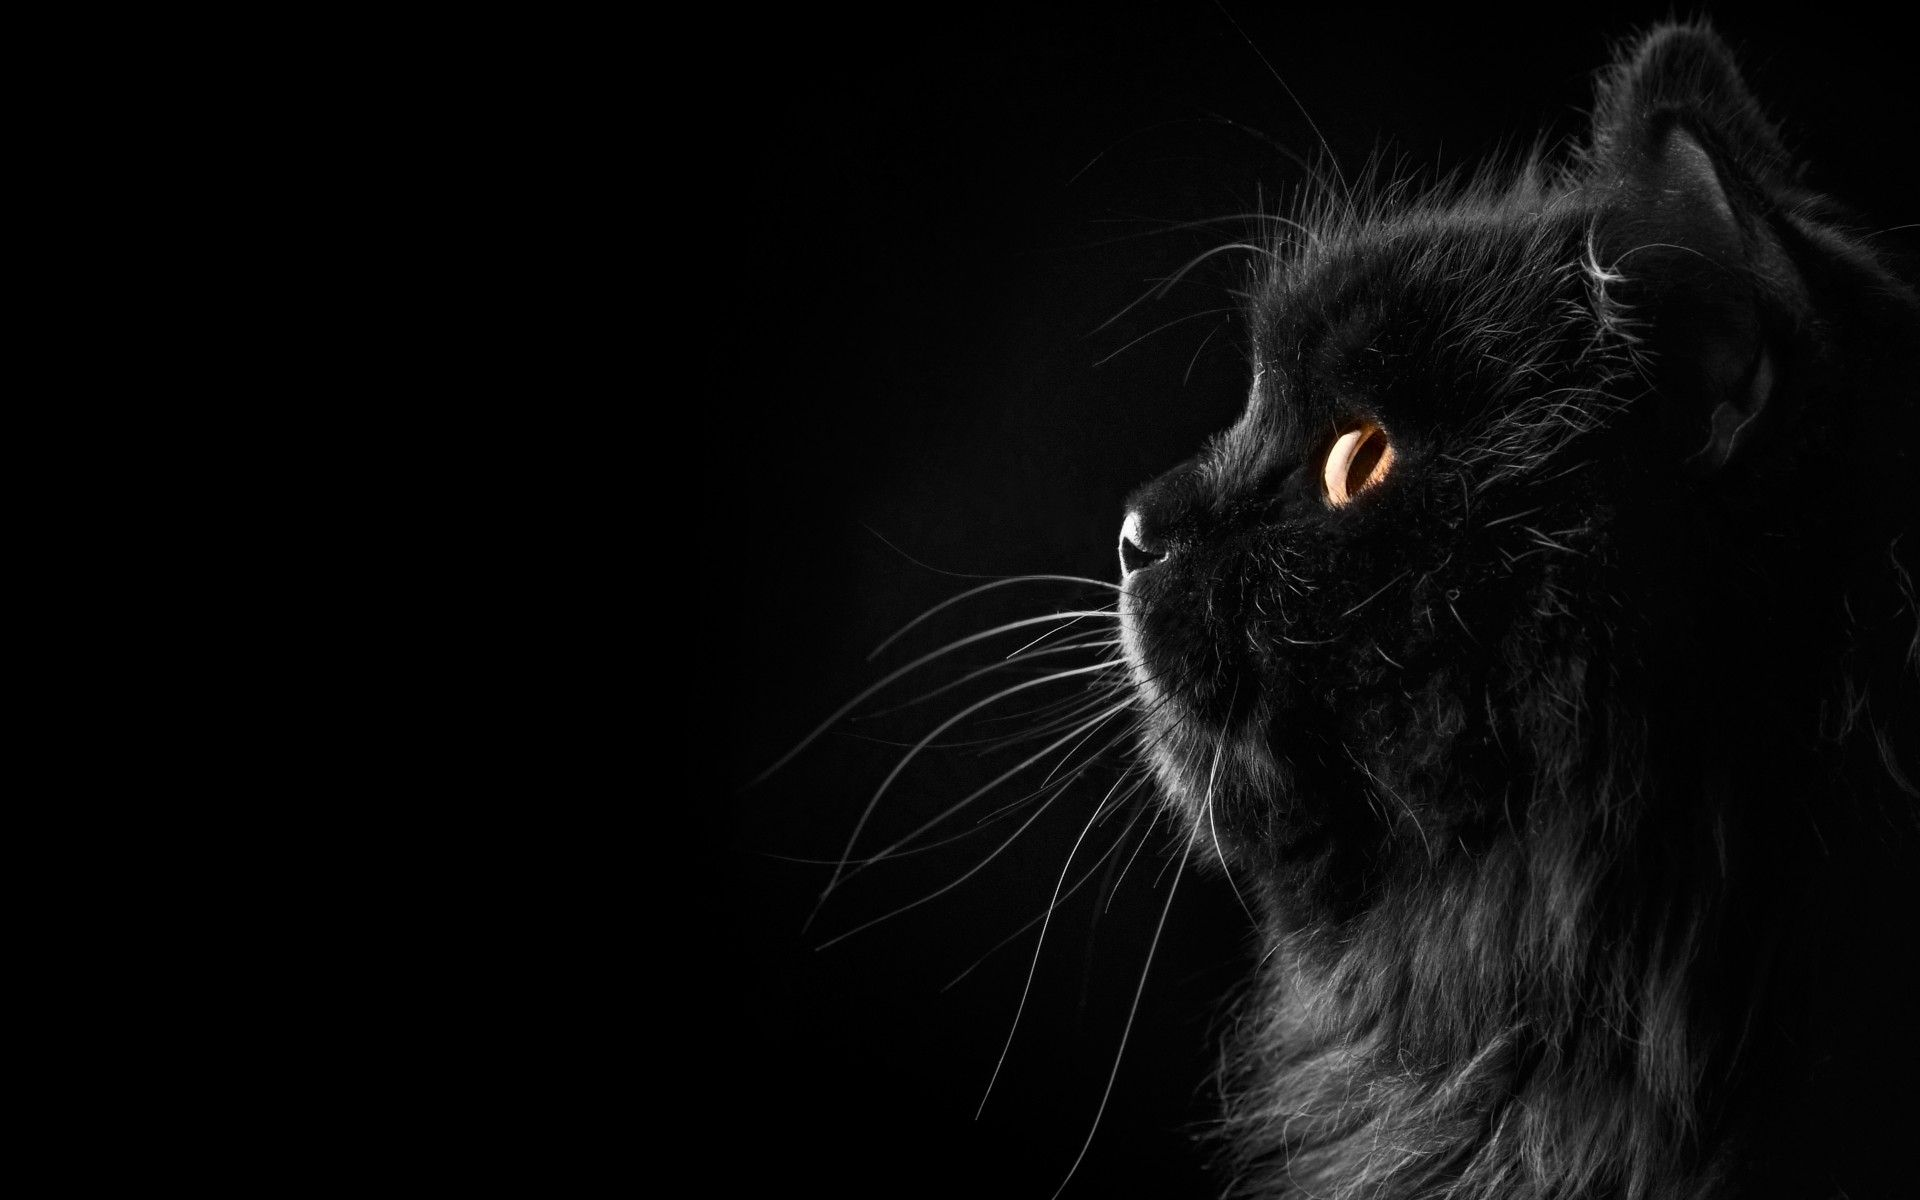 Persian Cat Face Cat Persian Black Female Profile Whiskers Face Eyes Wallpaper Fluffy Black Cat Cat Wallpaper Kitten Wallpaper